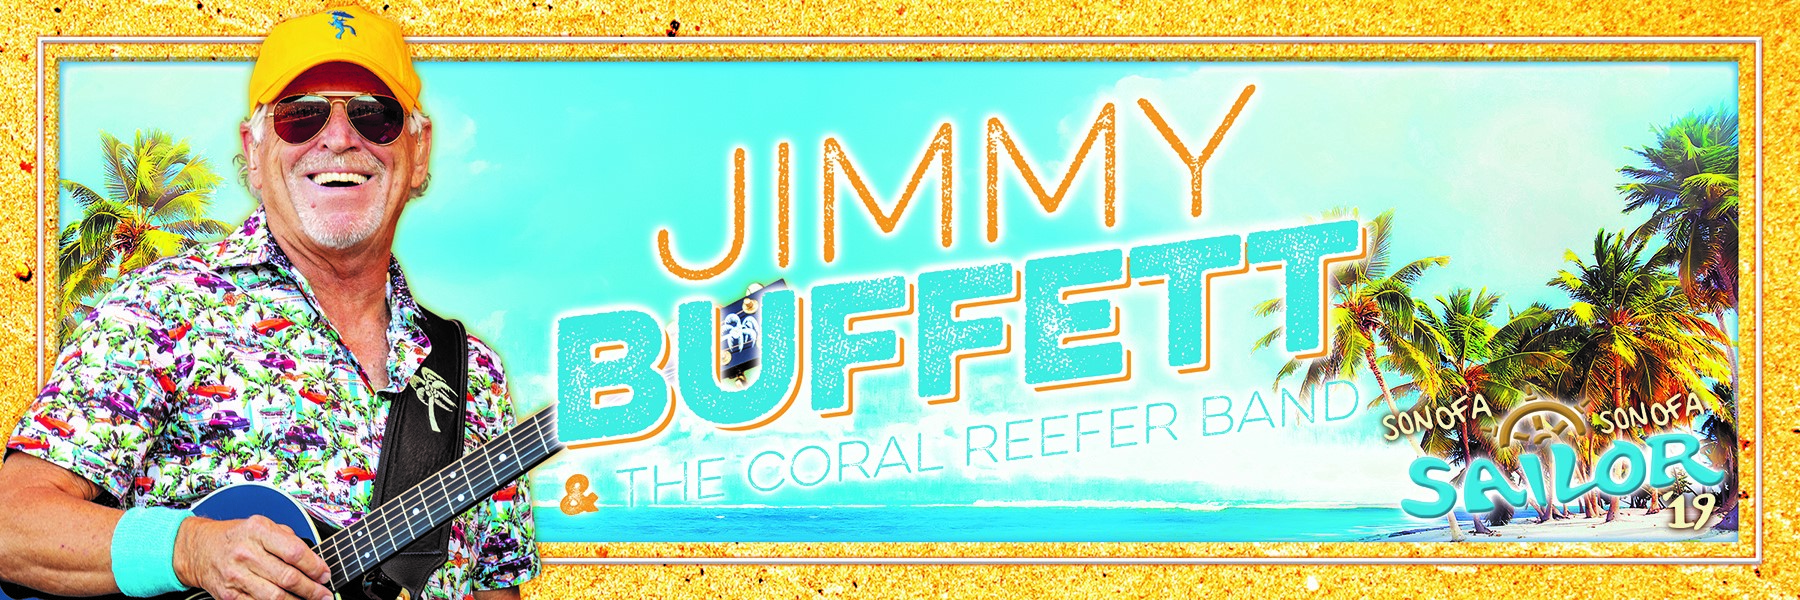 Jimmy Buffett and the Coral Reefer Band   2WD 101 3